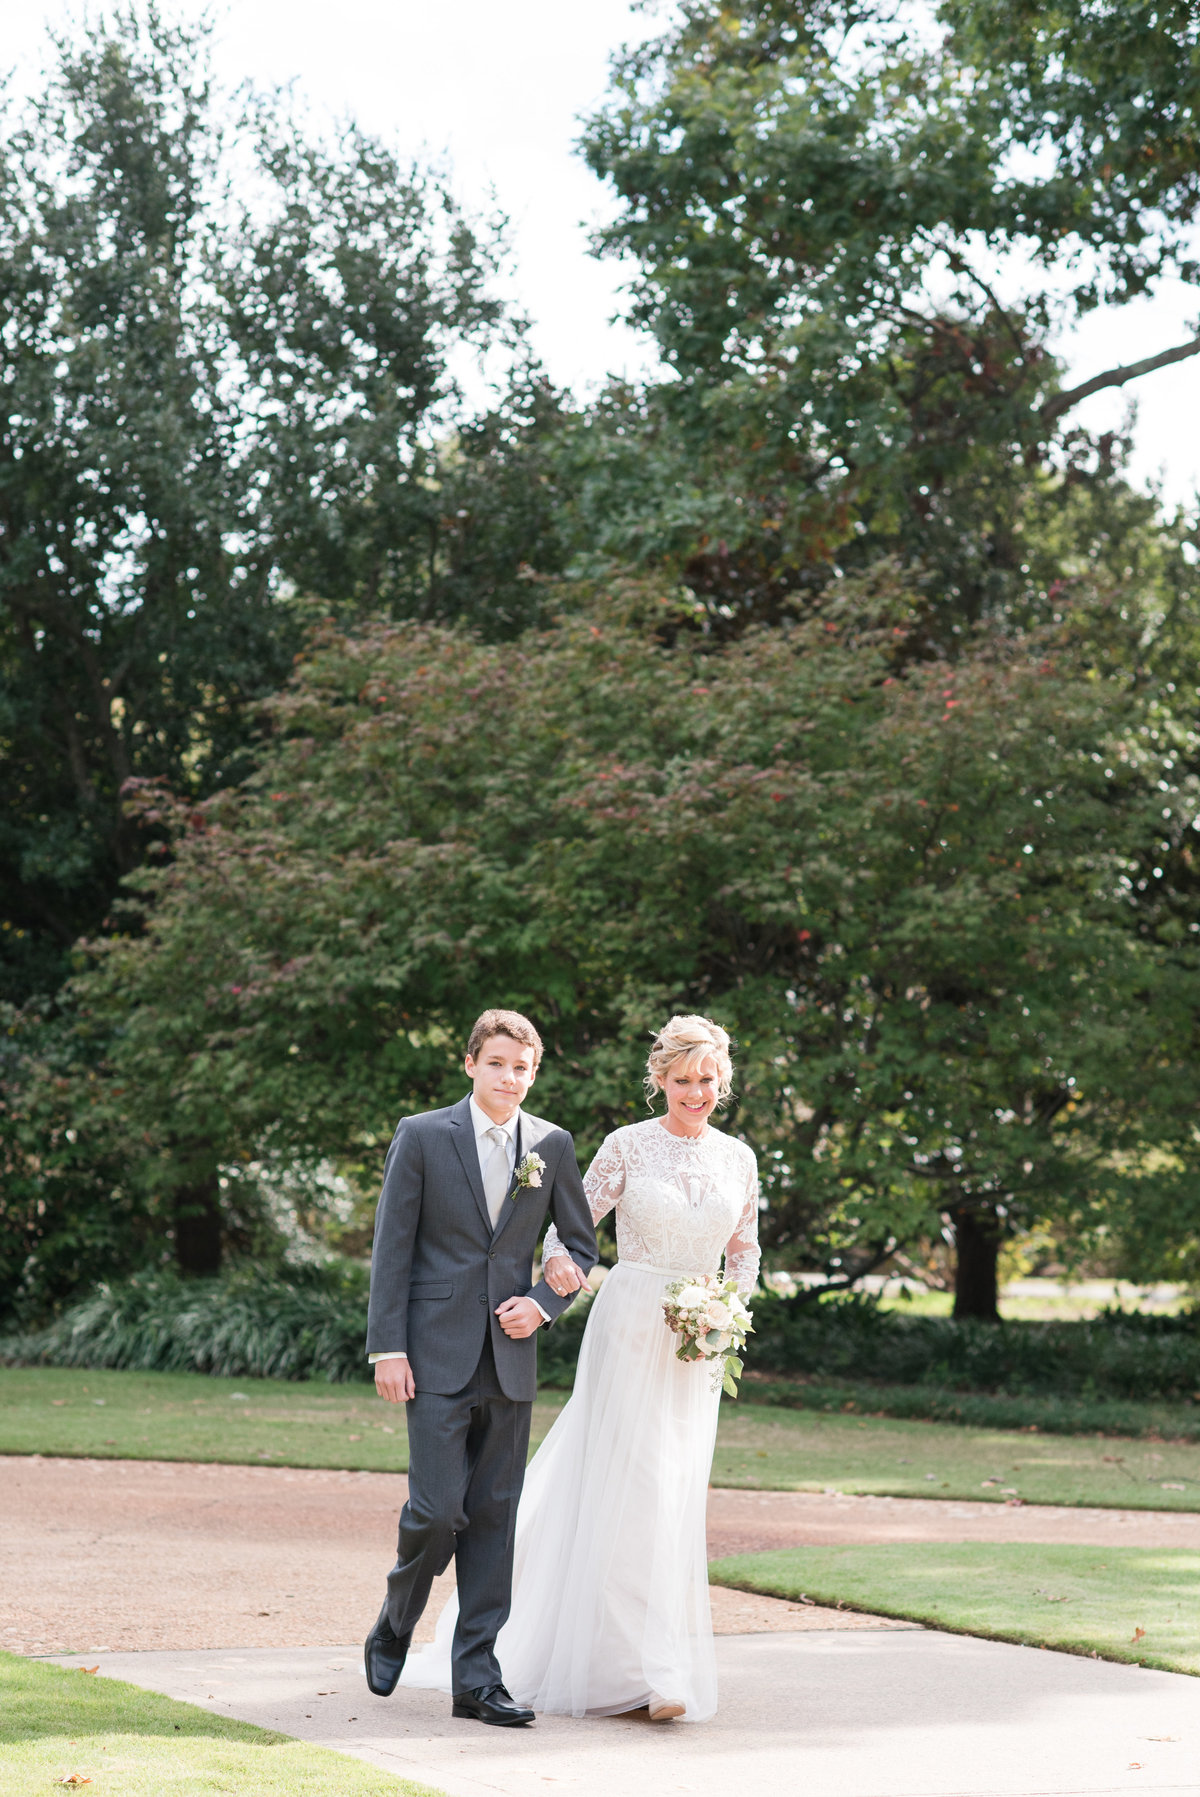 Fletcher_Park_Raleigh_NC_Wedding0025